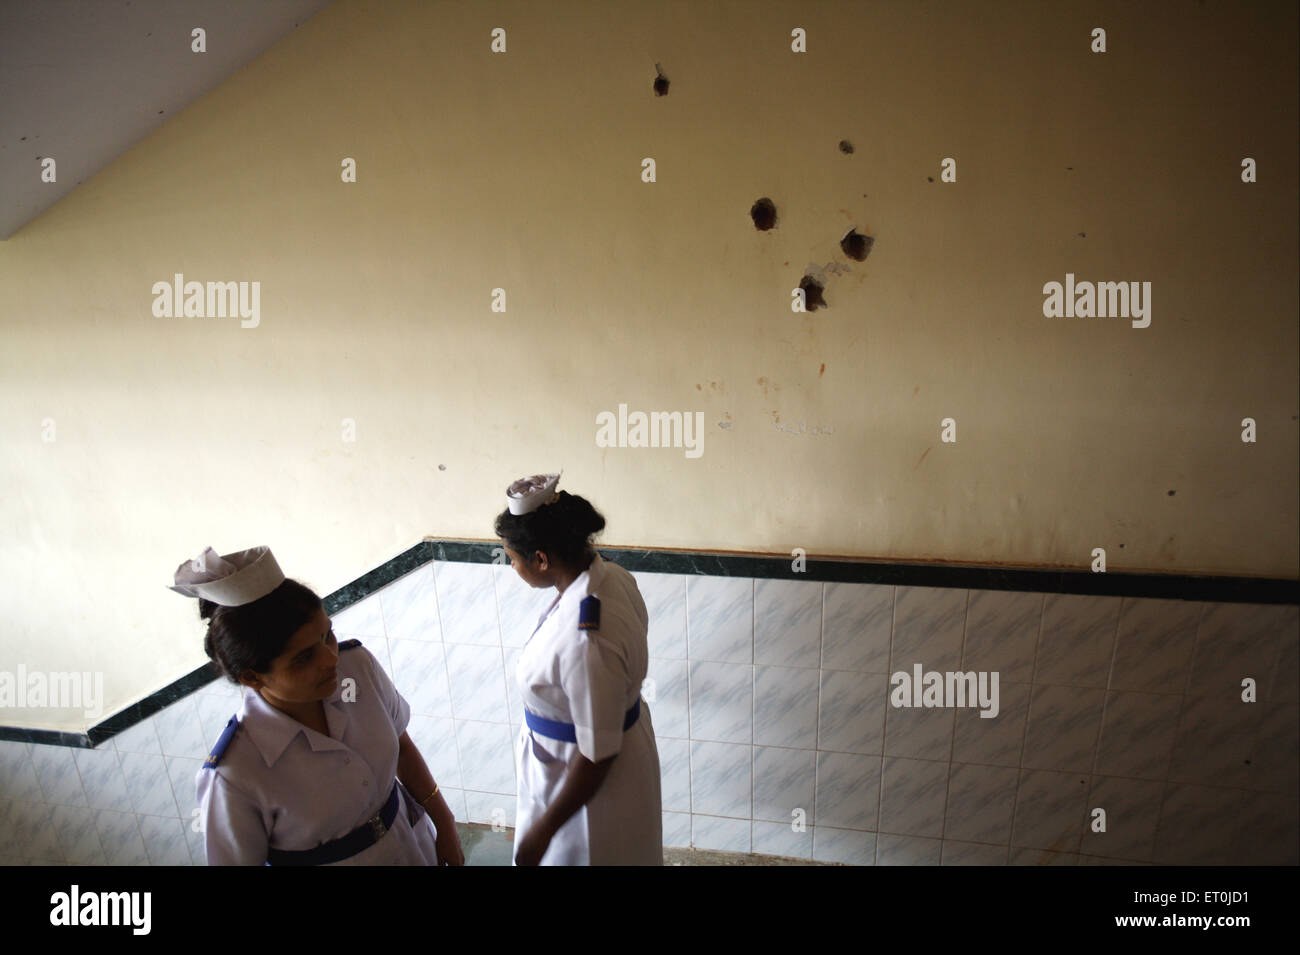 Bullets marks walls Cama and Albless hospital in terrorist attack by Deccan Mujahedeen on 26th November 2008 ; Bombay - Stock Image